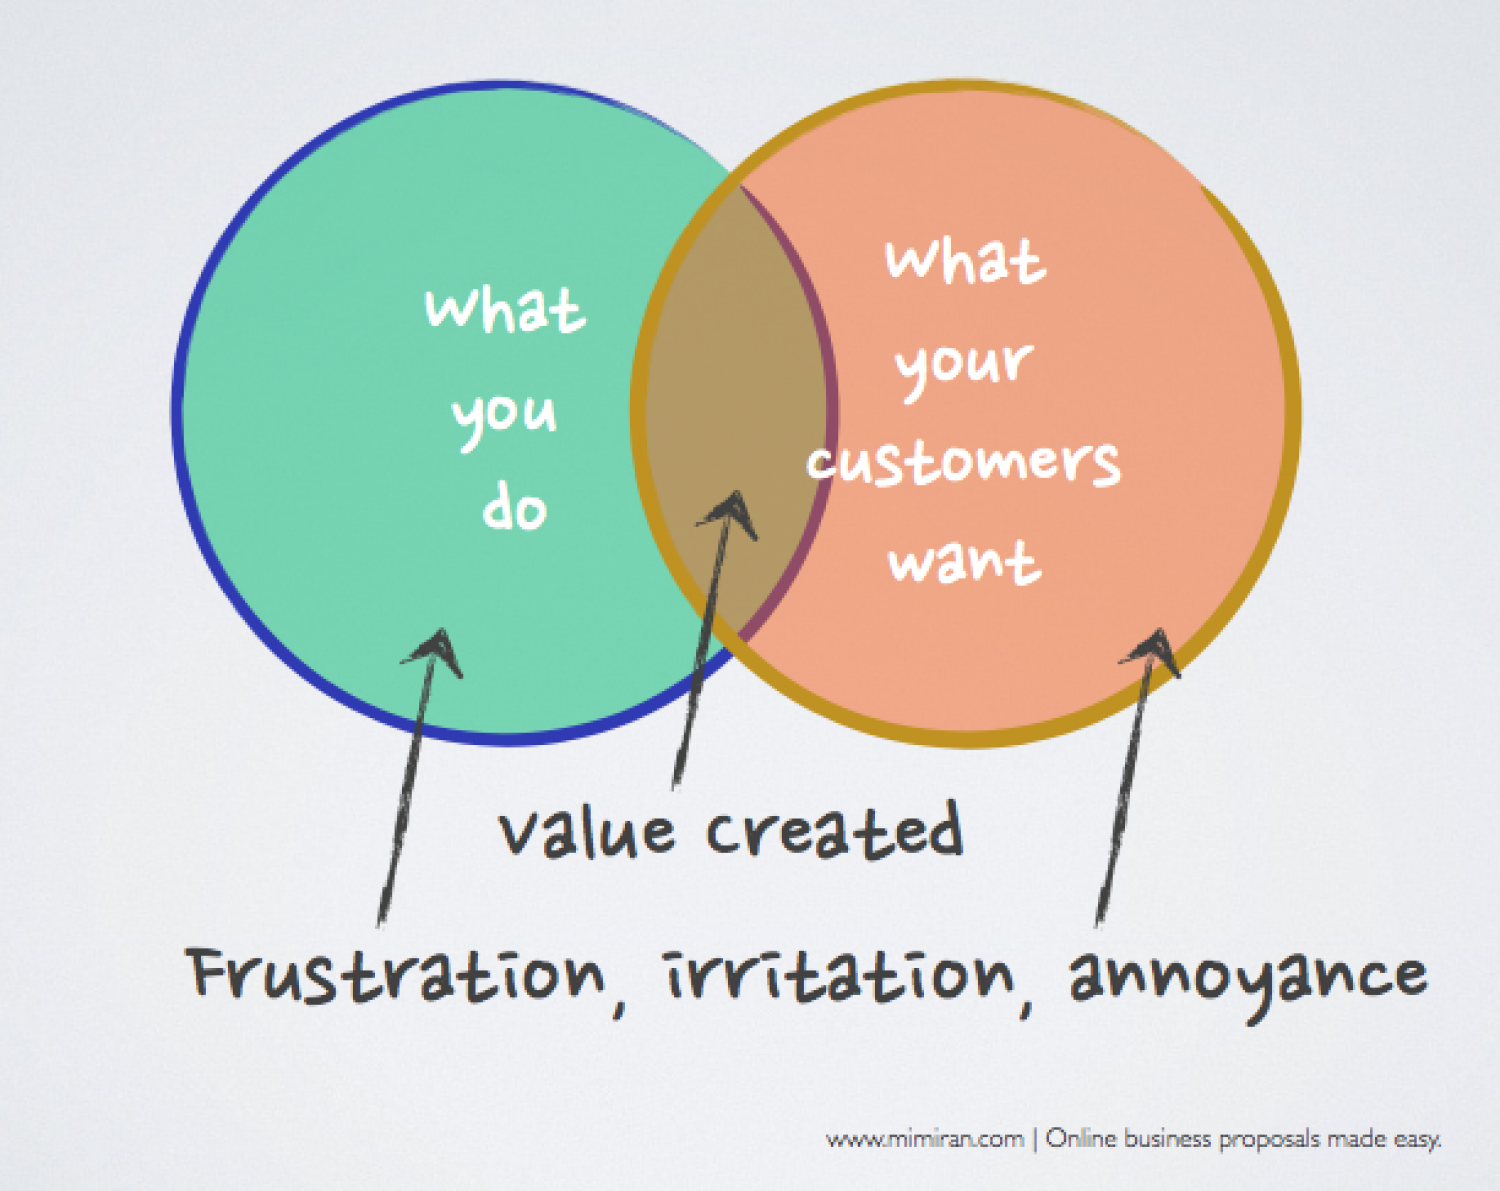 What you do versus what your customers want venn diagram visual what you do versus what your customers want venn diagram infographic pooptronica Choice Image